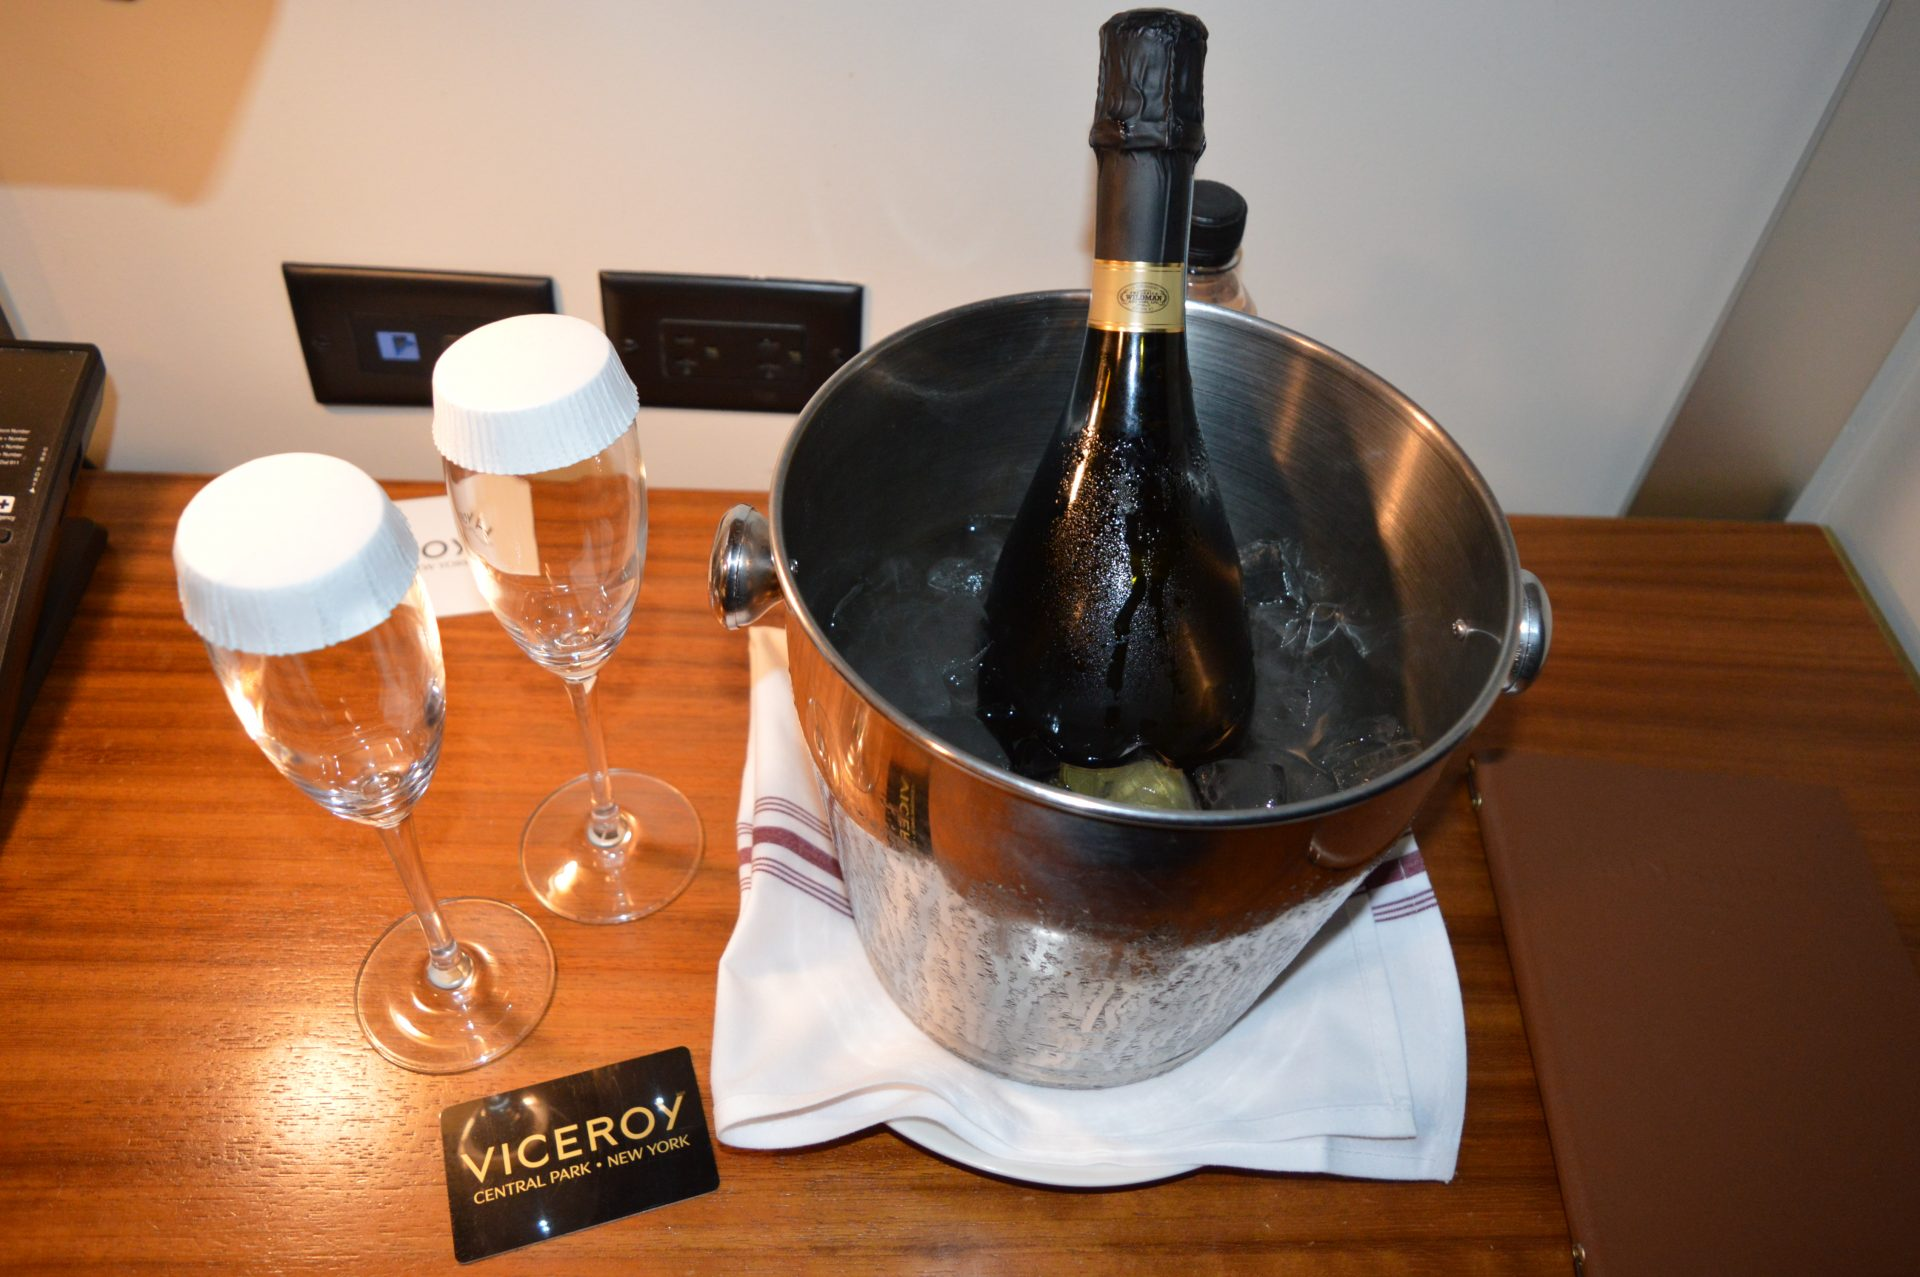 Champagne courtesy of the Viceroy